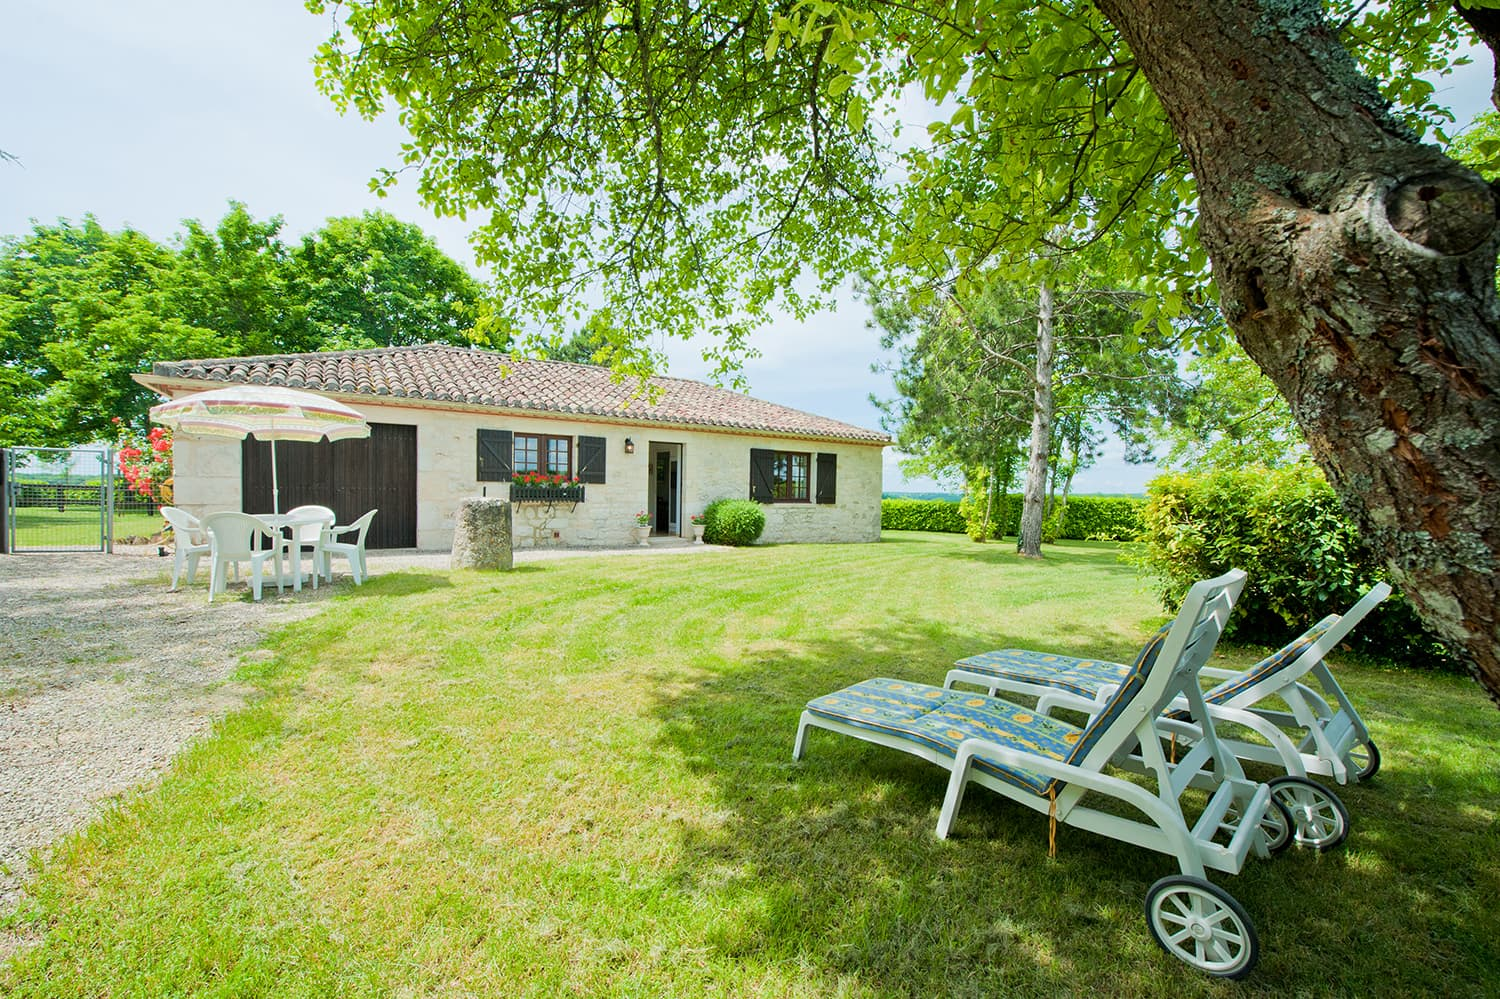 Holiday accommodation in Saux, Occitanie